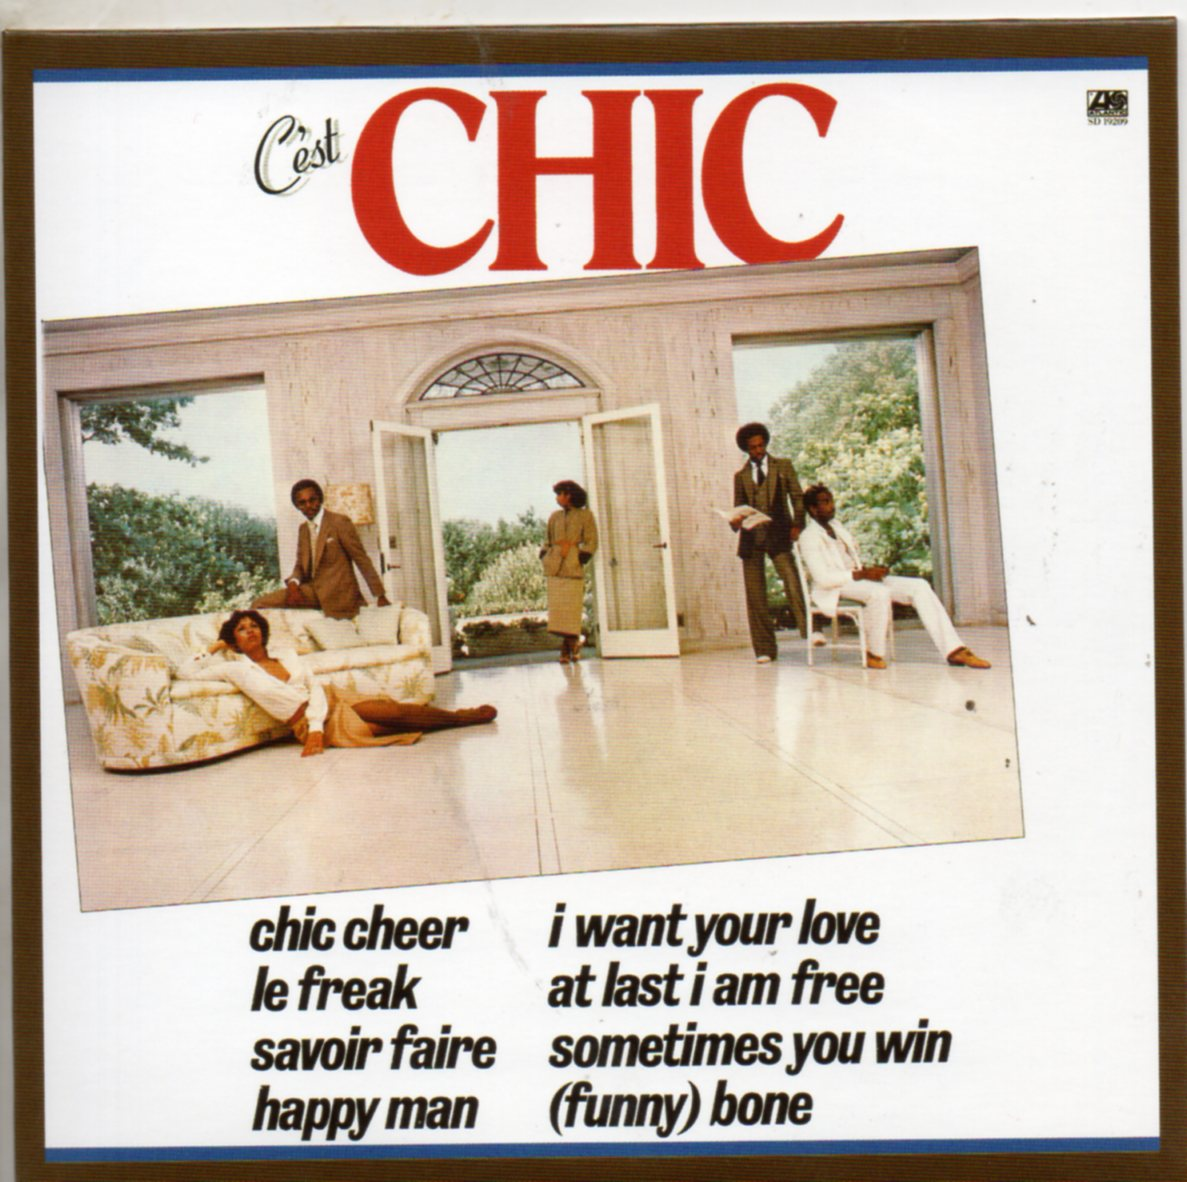 CHIC - Your Love 5 Remixes Jewel Case